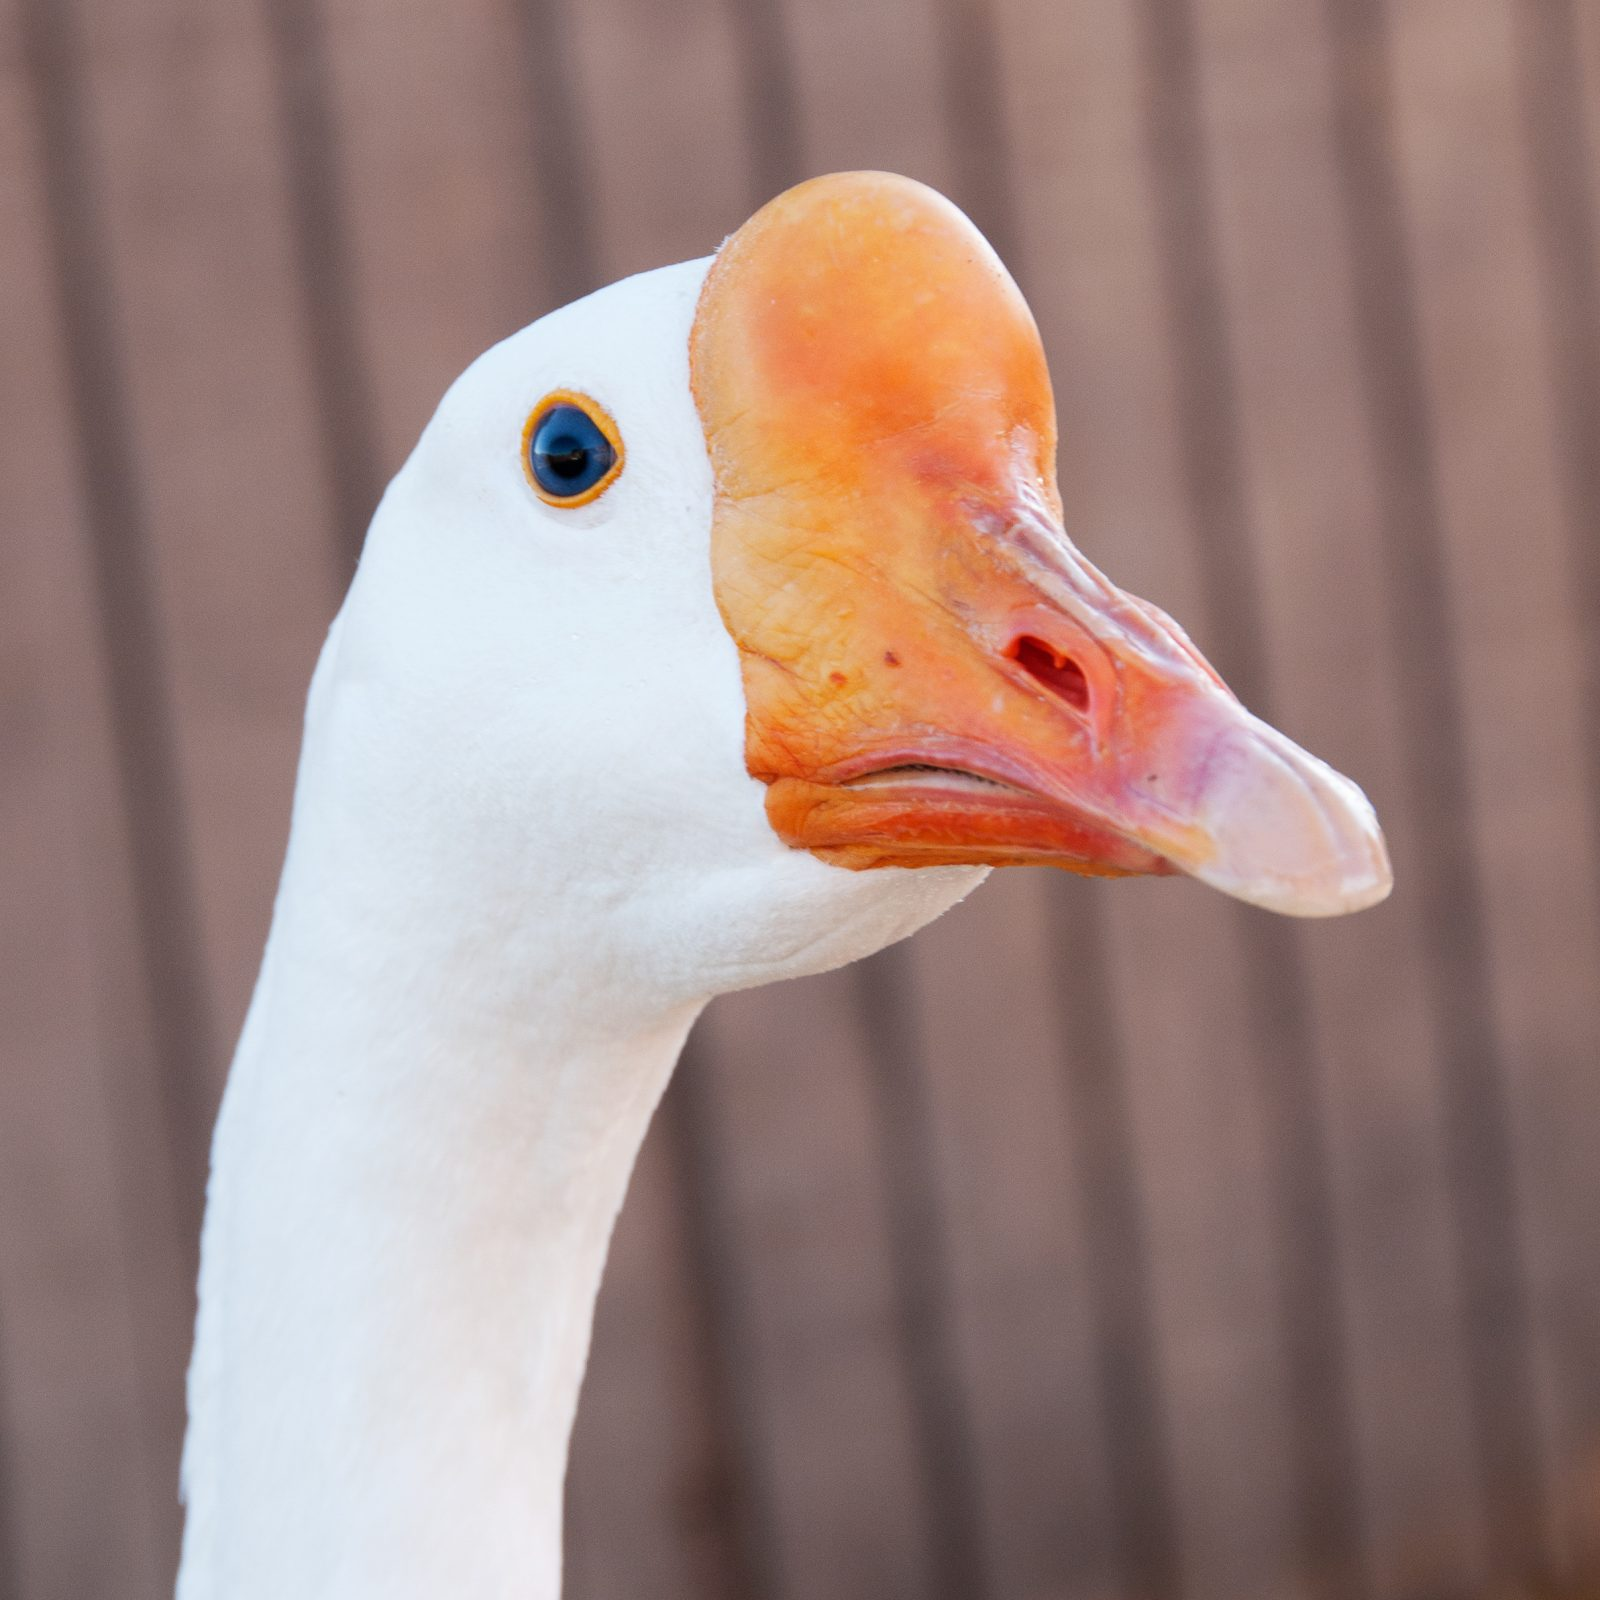 Thatcher goose at Farm Sanctuary